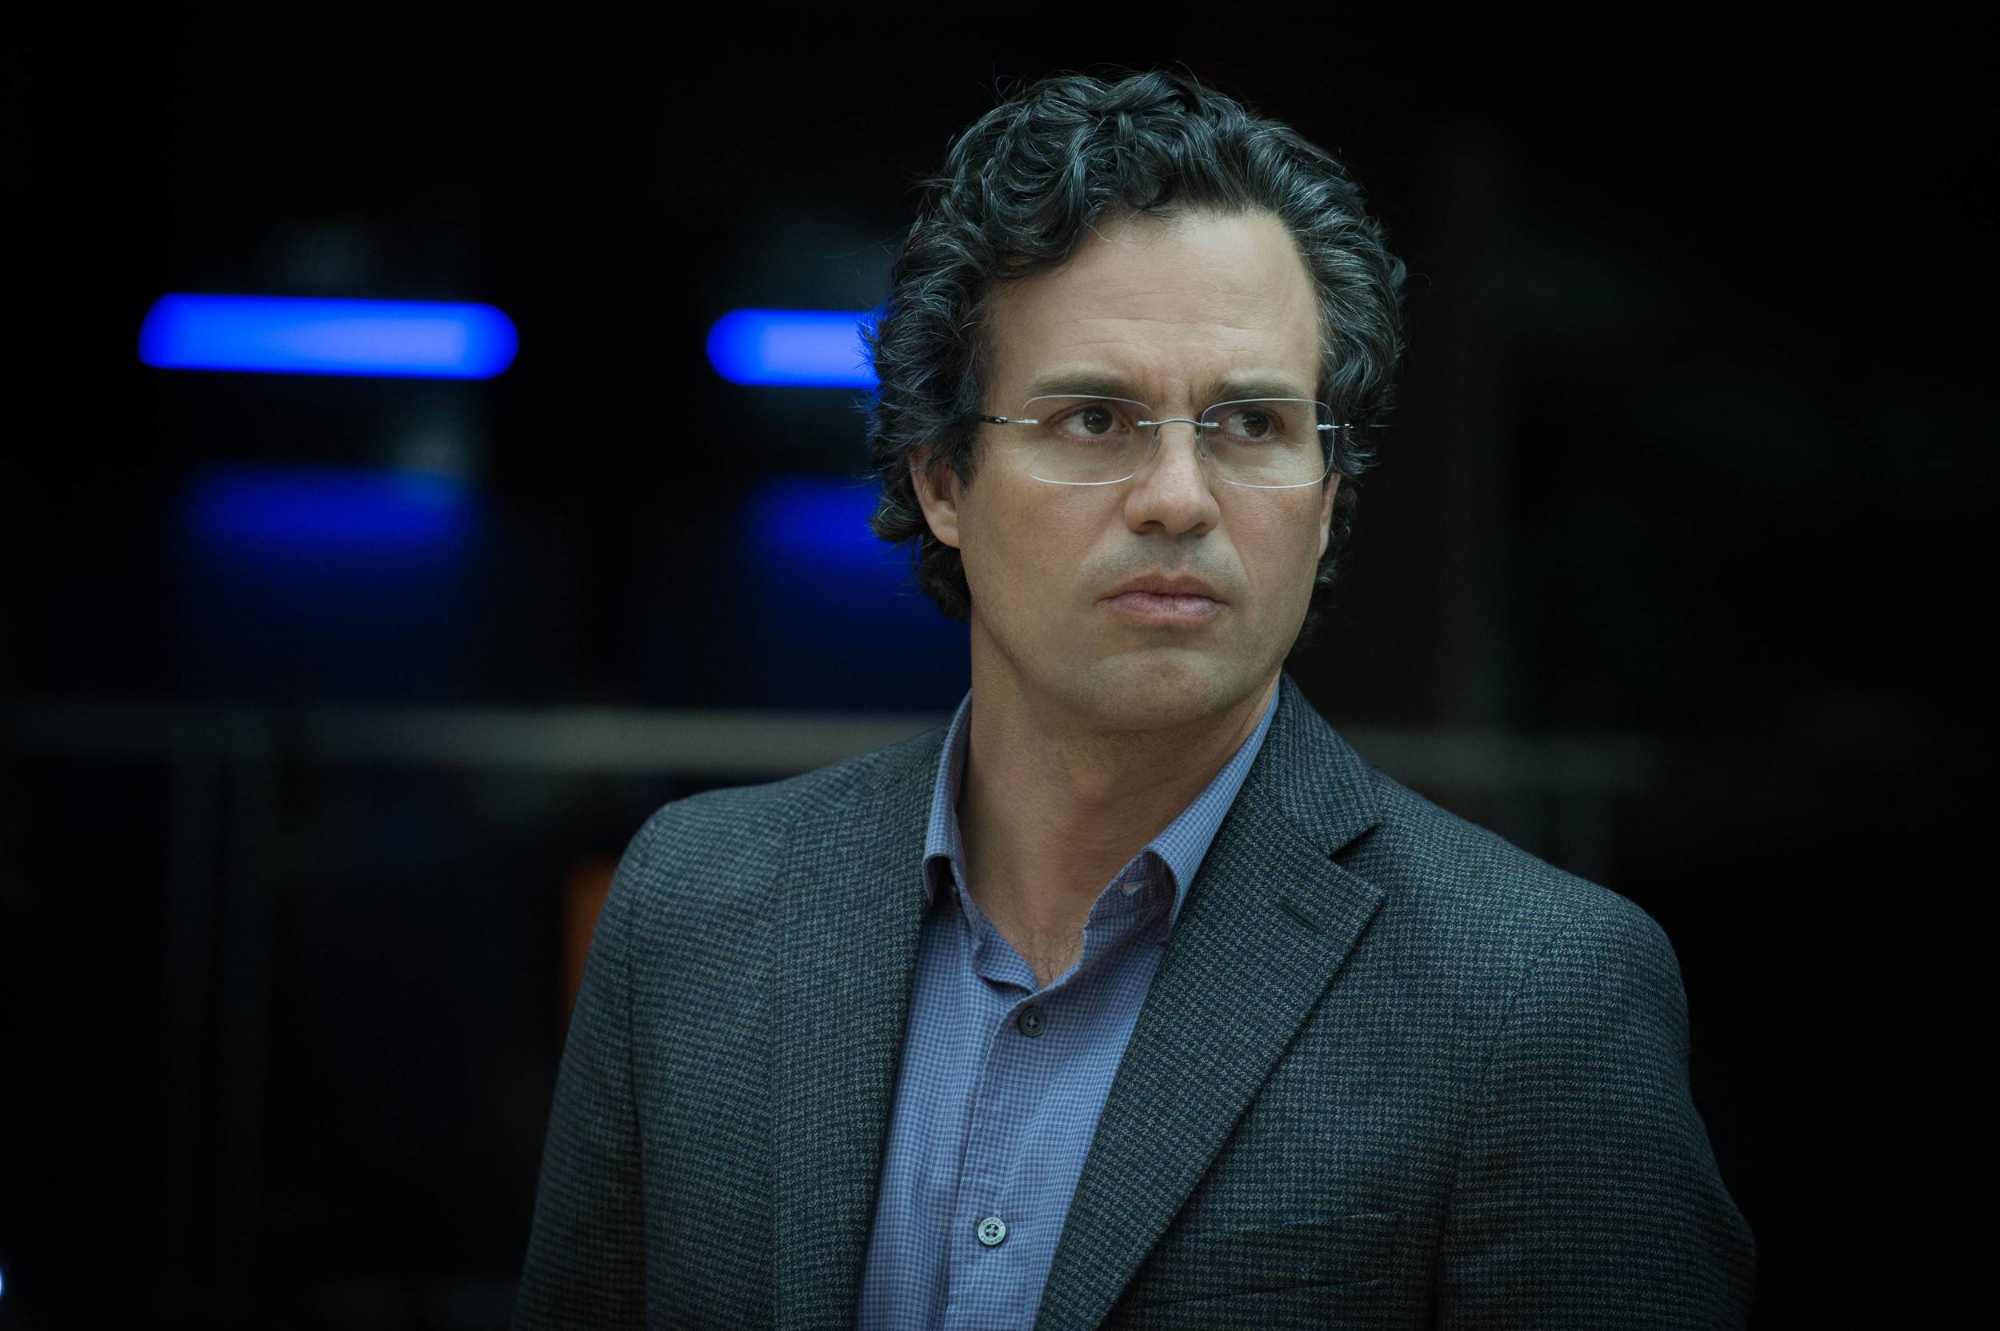 Thanks to Universal, this may be the closest we get to seeing a Mark Ruffalo solo-Hulk movie.